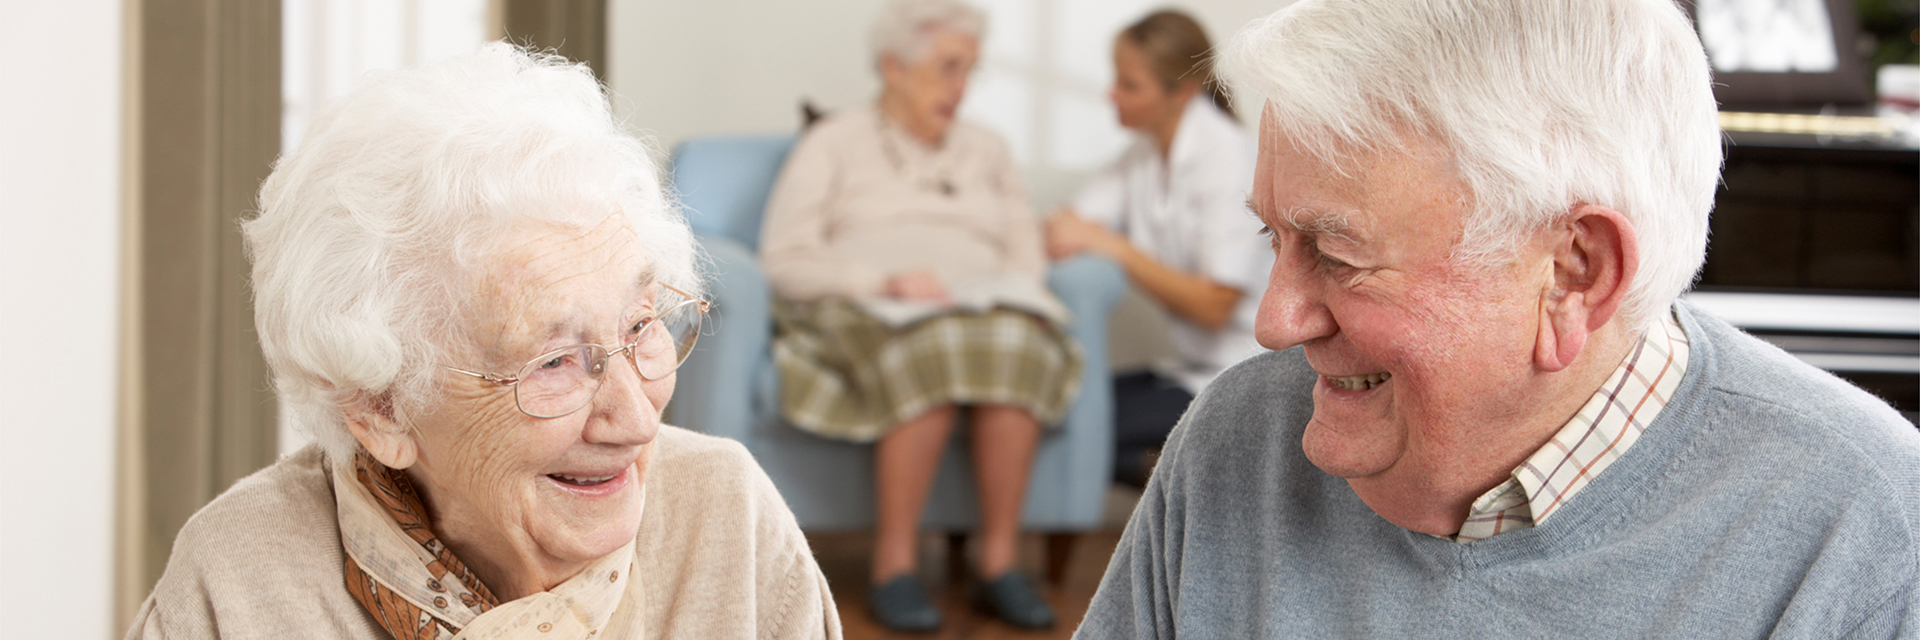 elderly couple smiling with patient in background